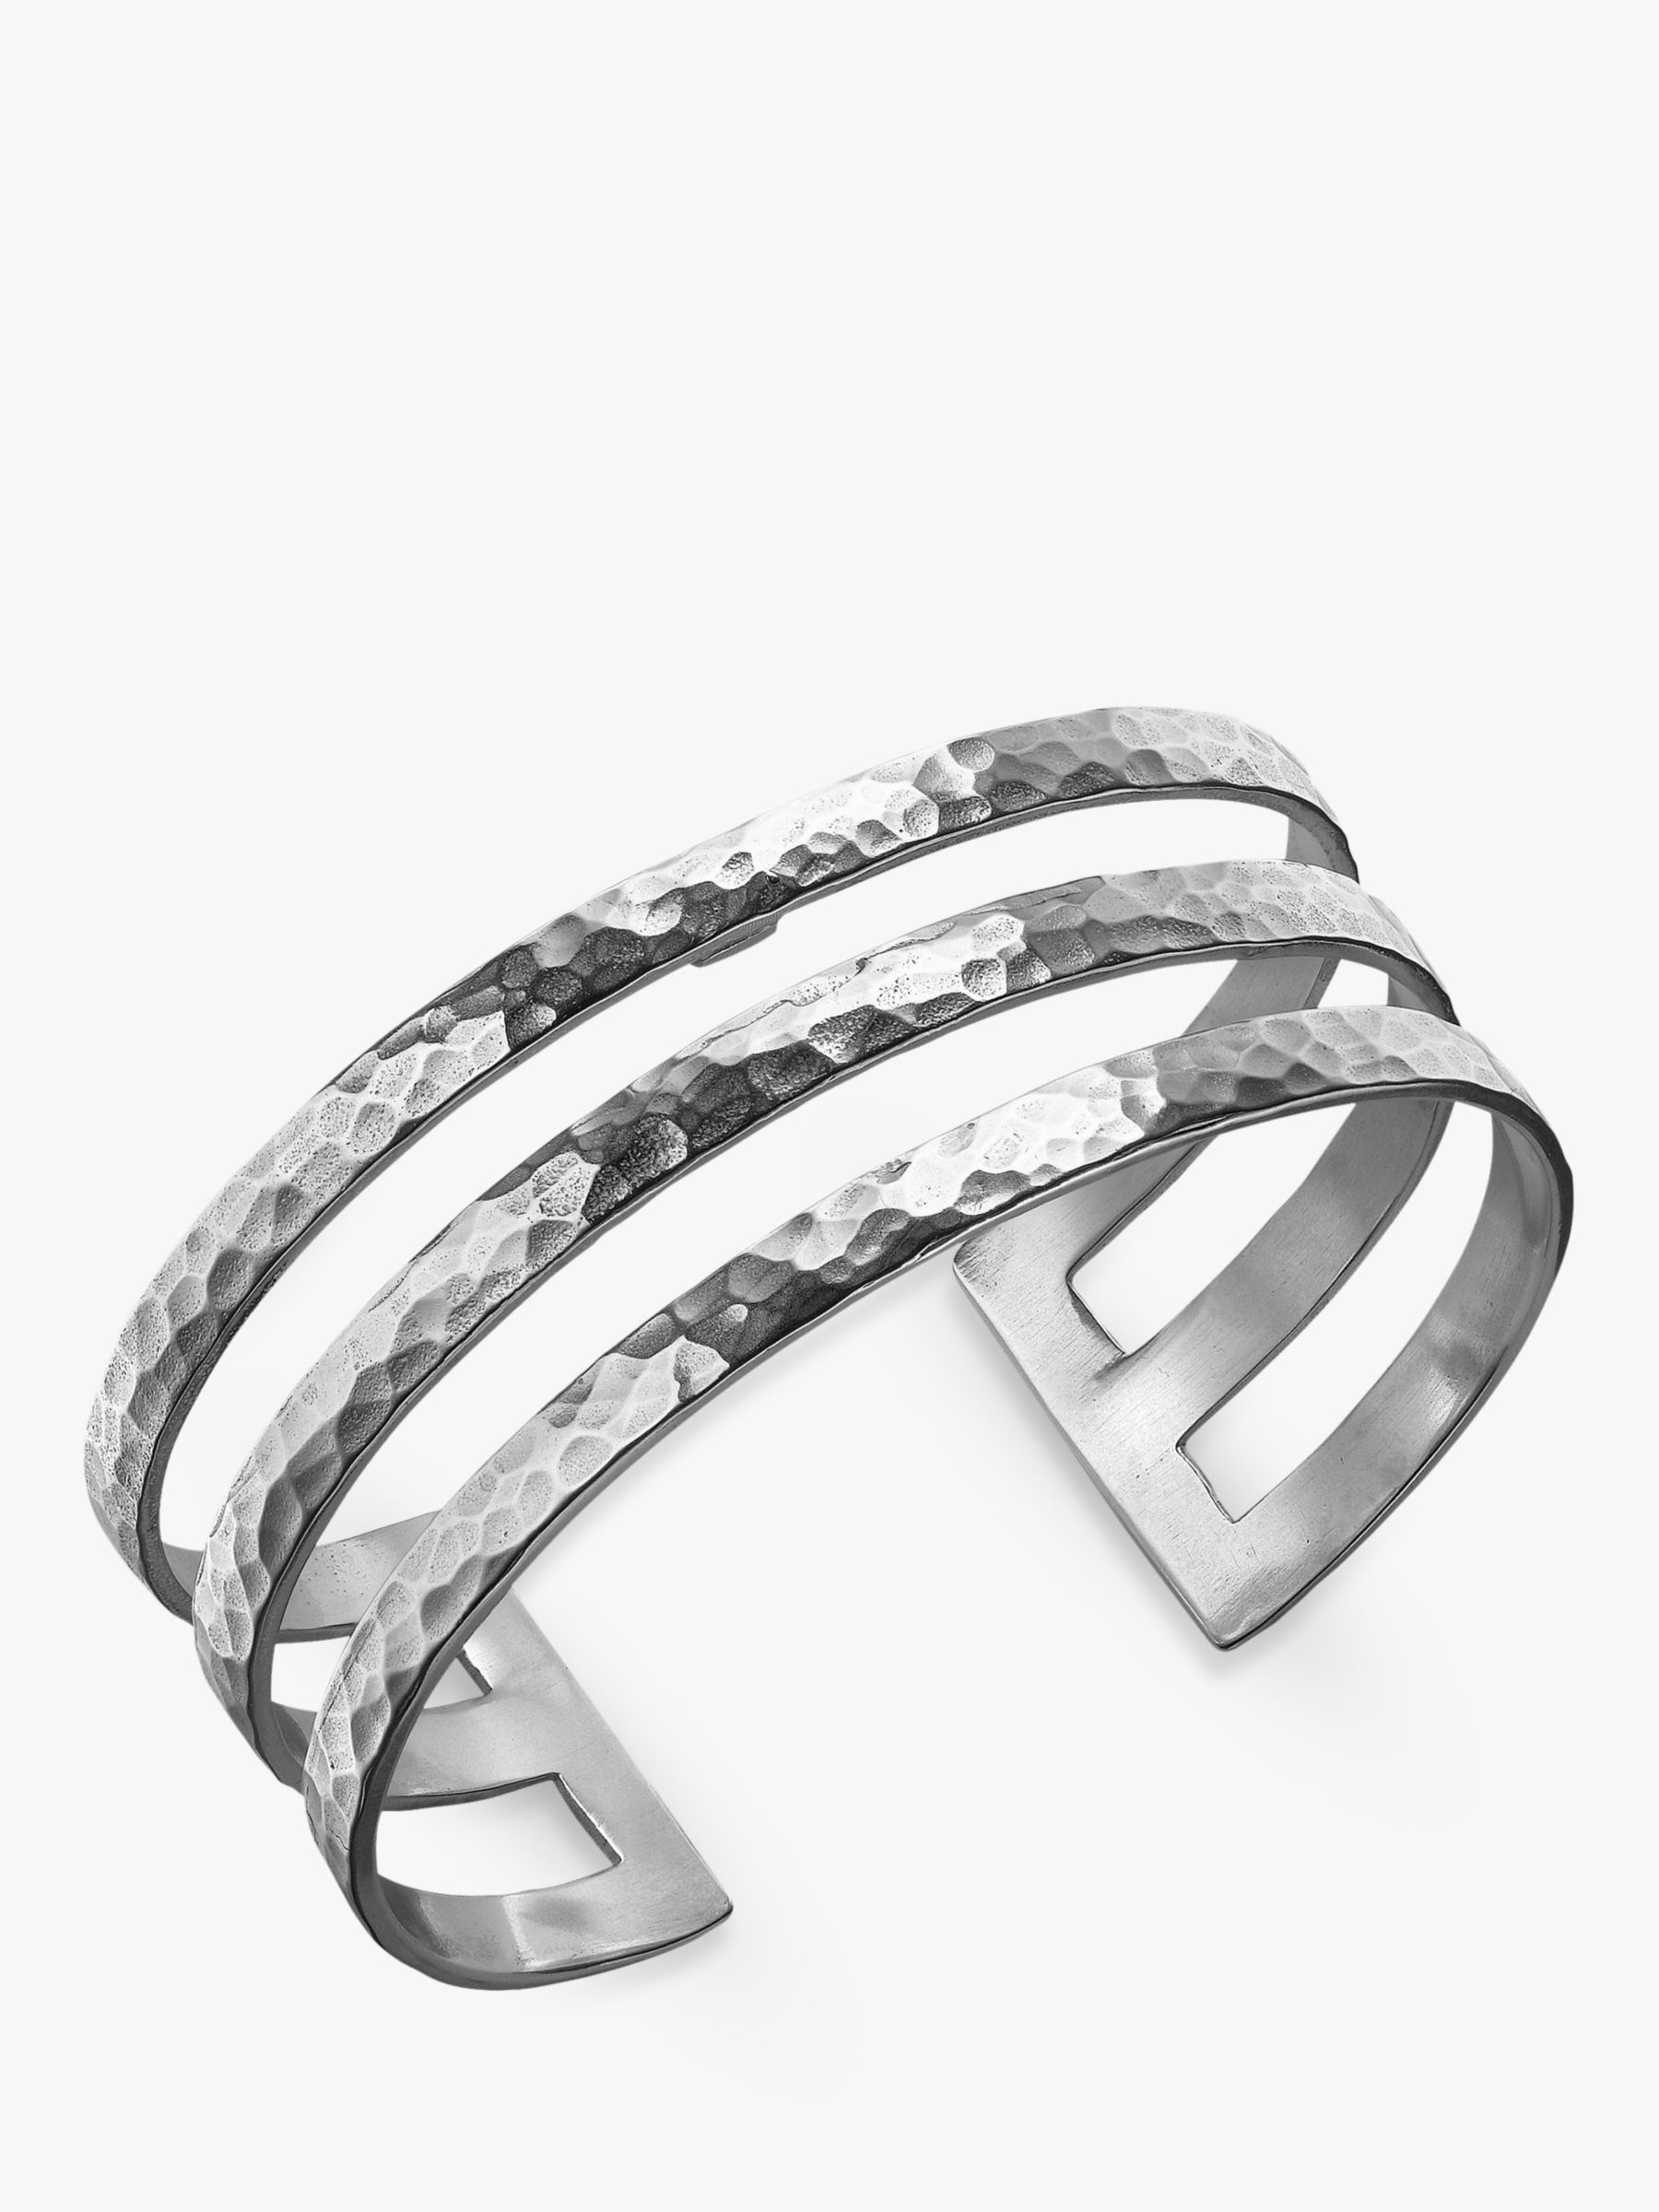 Dower & Hall Dower & Hall Sterling Silver Triple Cuff, Silver, 25mm